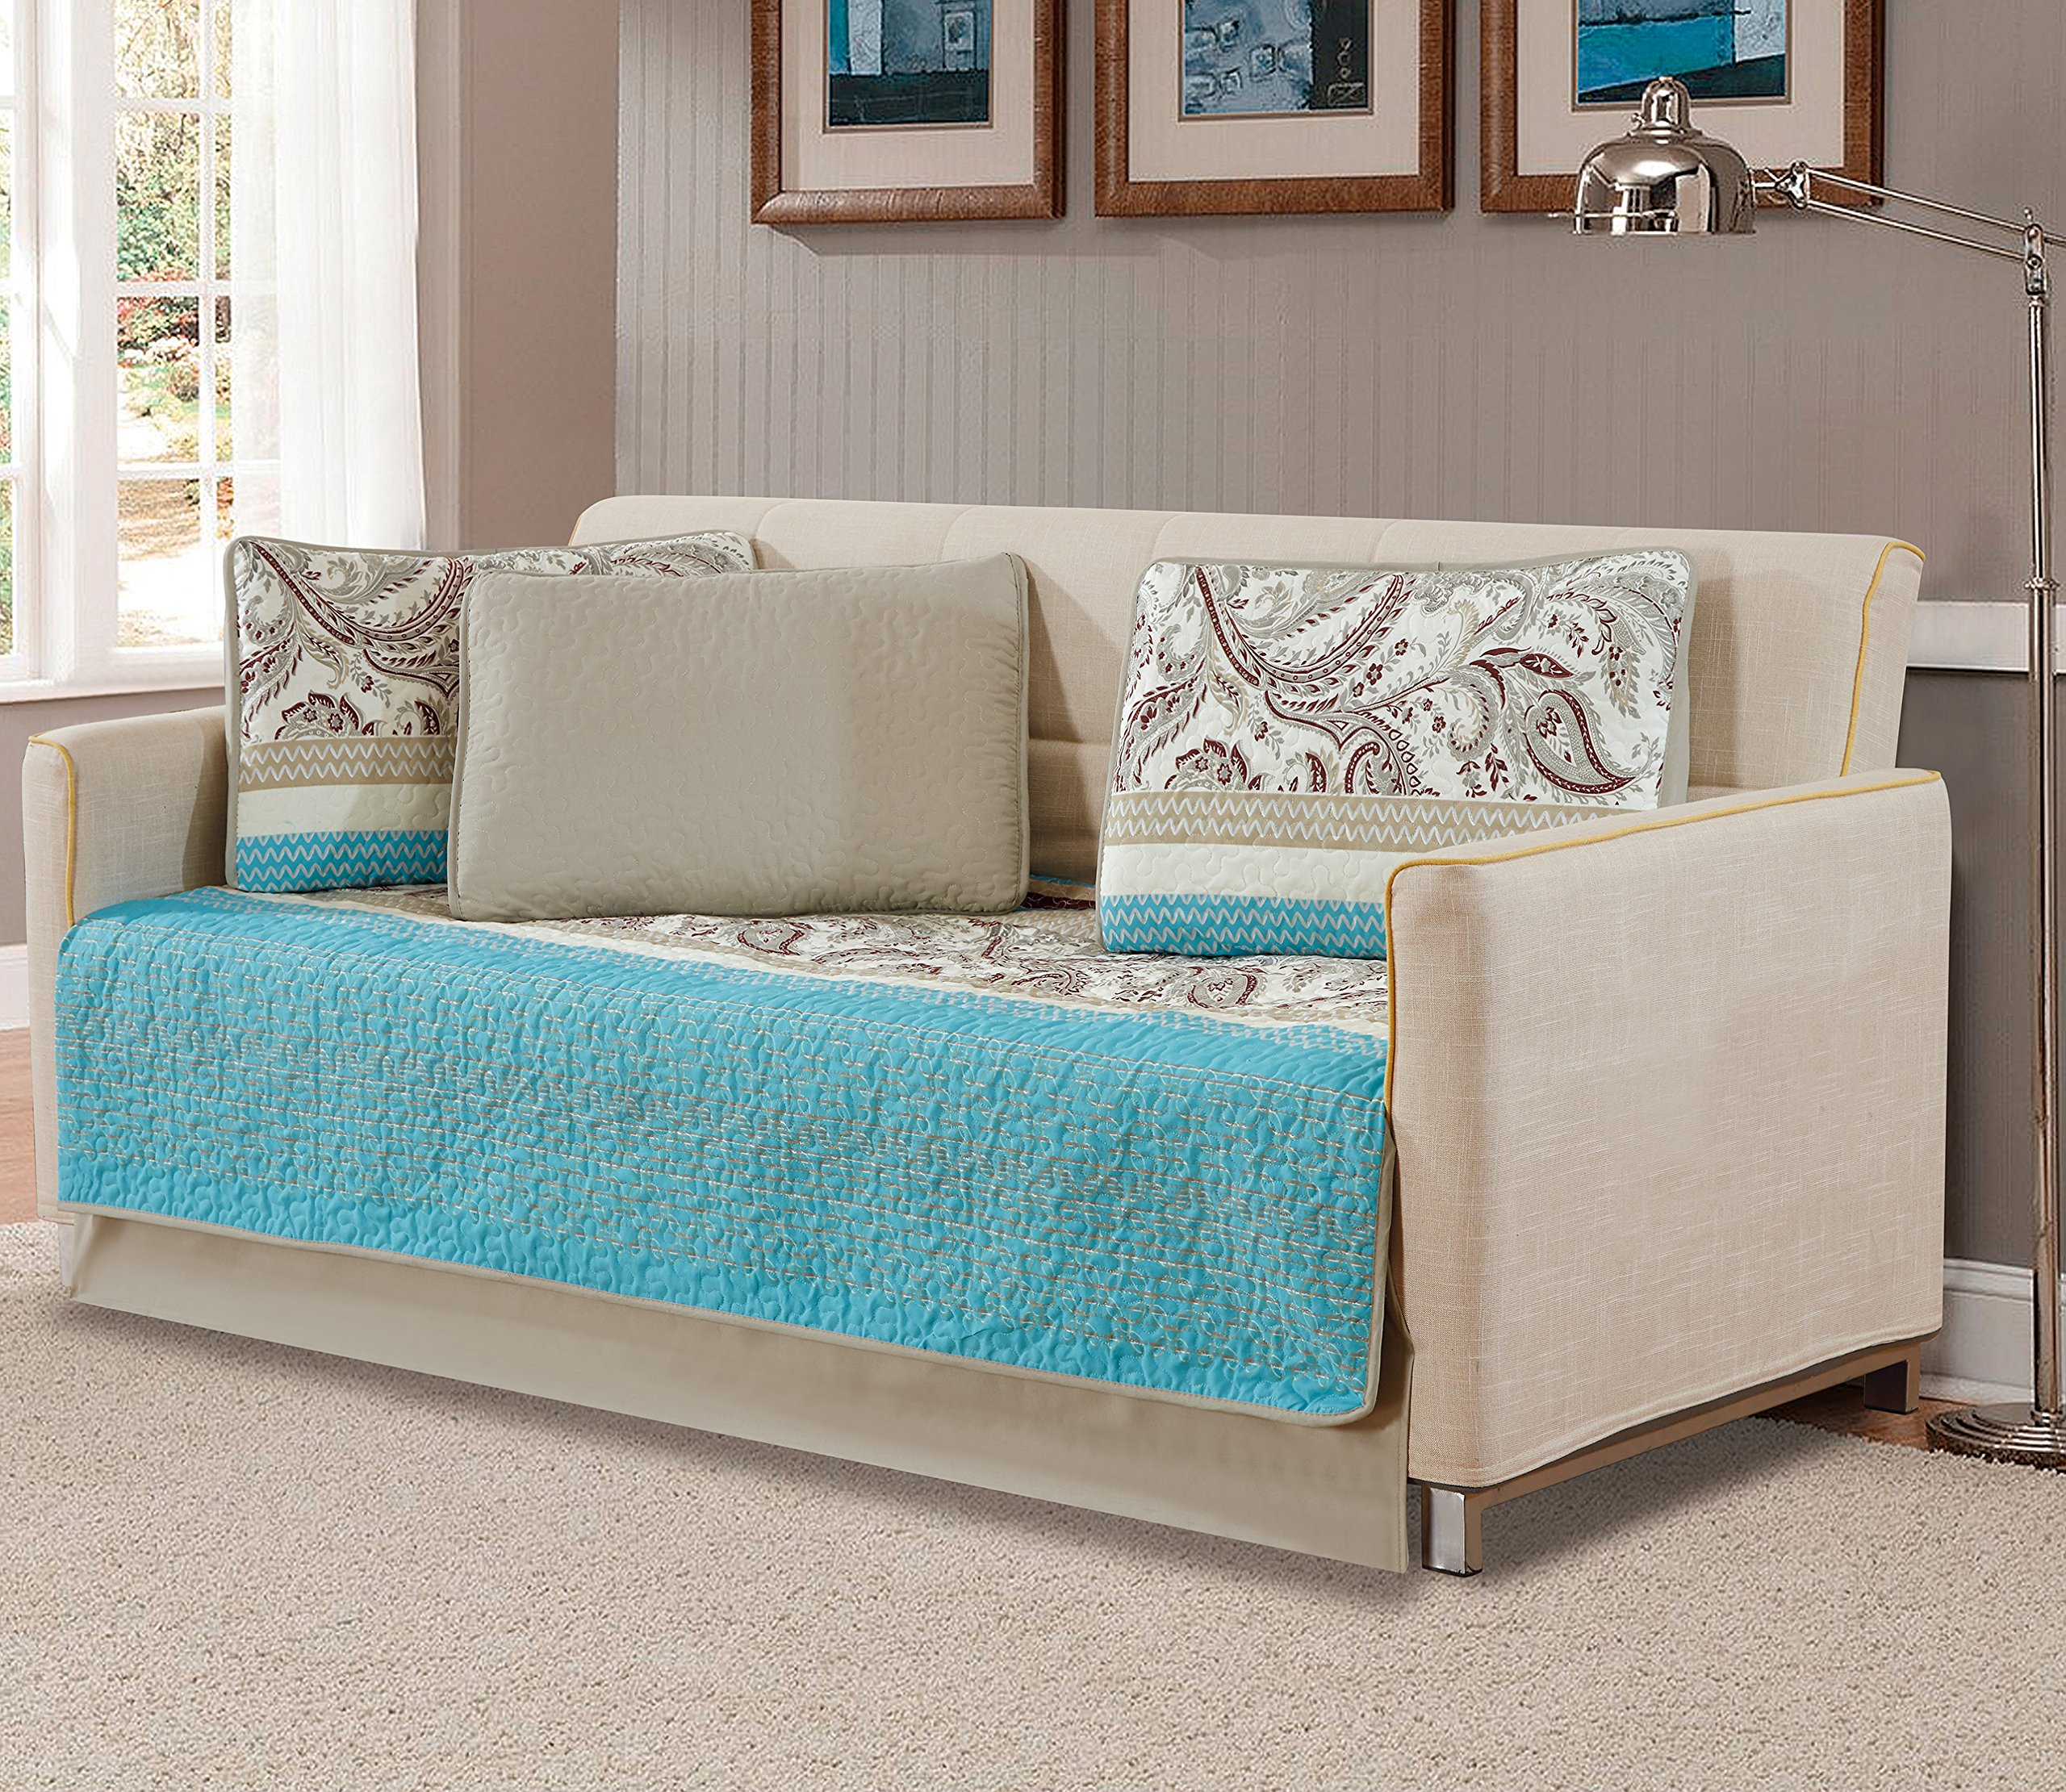 Mk Collection 5pc Daybed Bedspread Quilted Print Modern Floral Off White Turquoise Grey Taupe Burgundy #Lisbon New